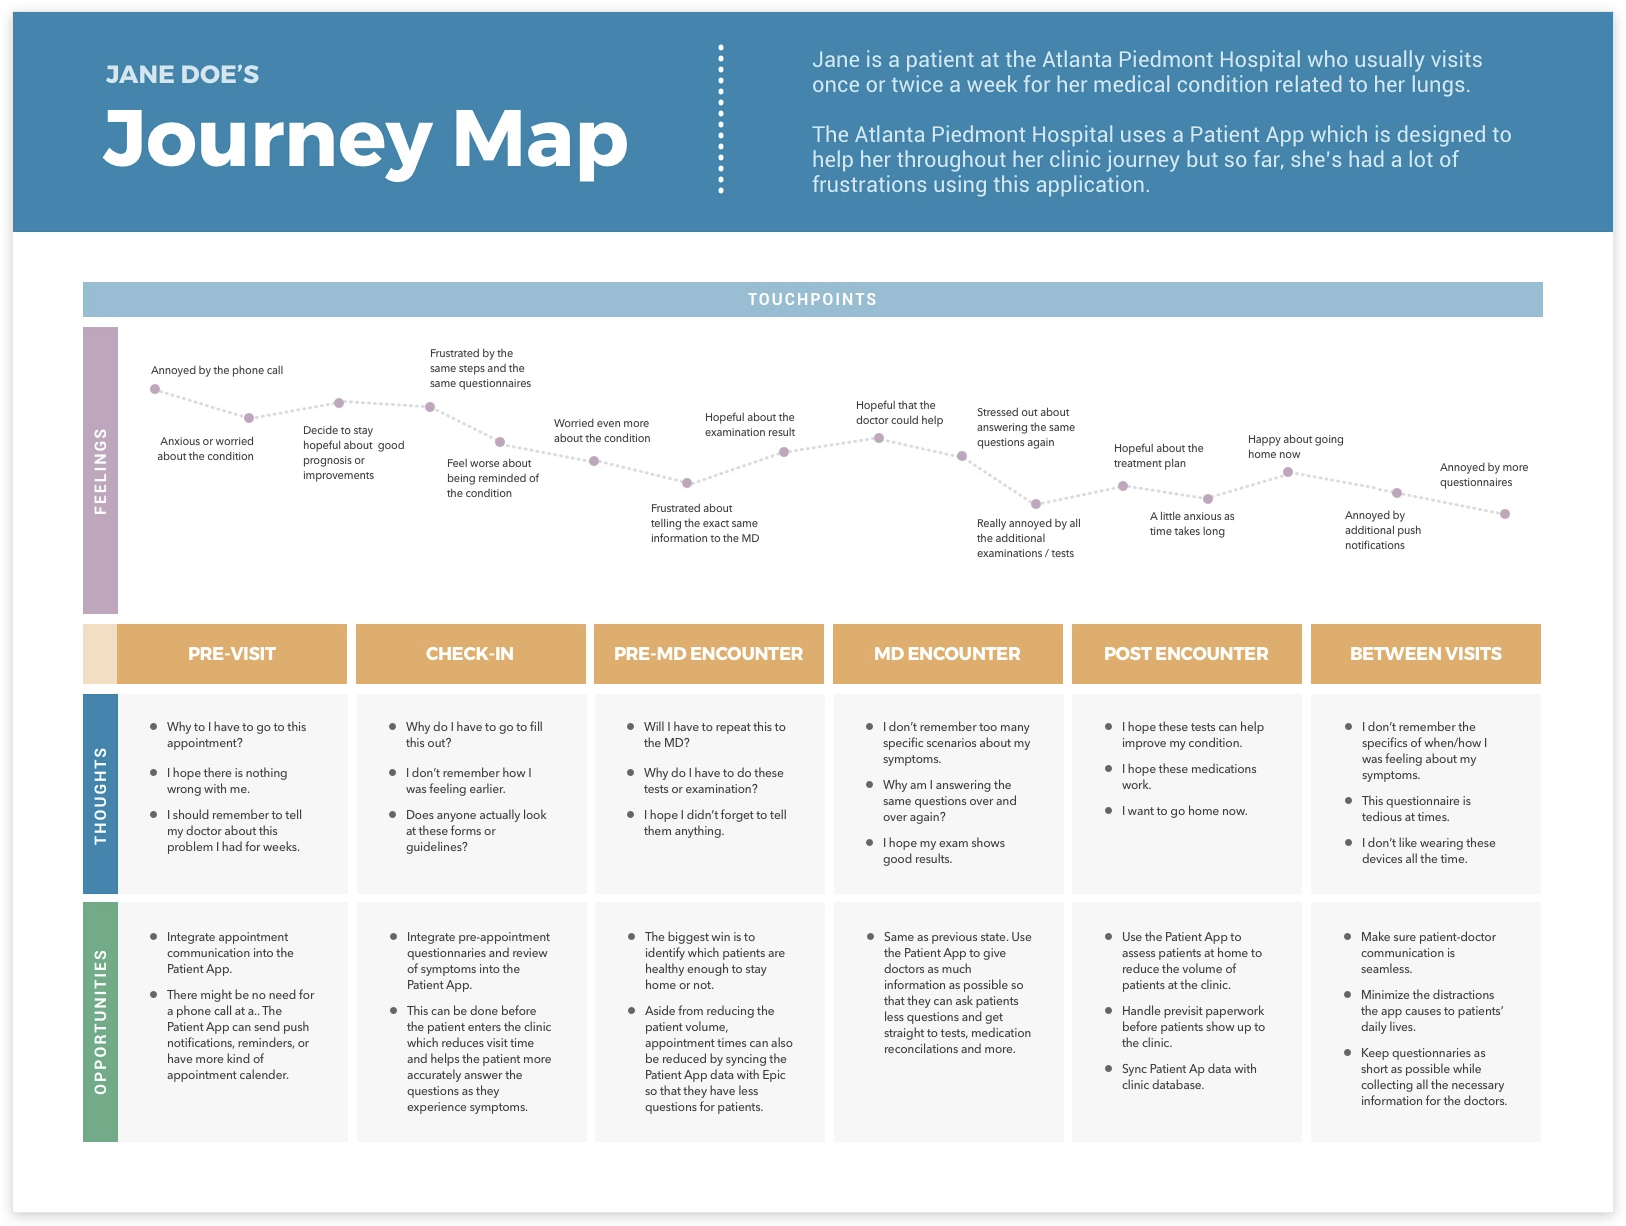 Creating Free Sketch Templates User Personas Journey Maps - Persona journey map